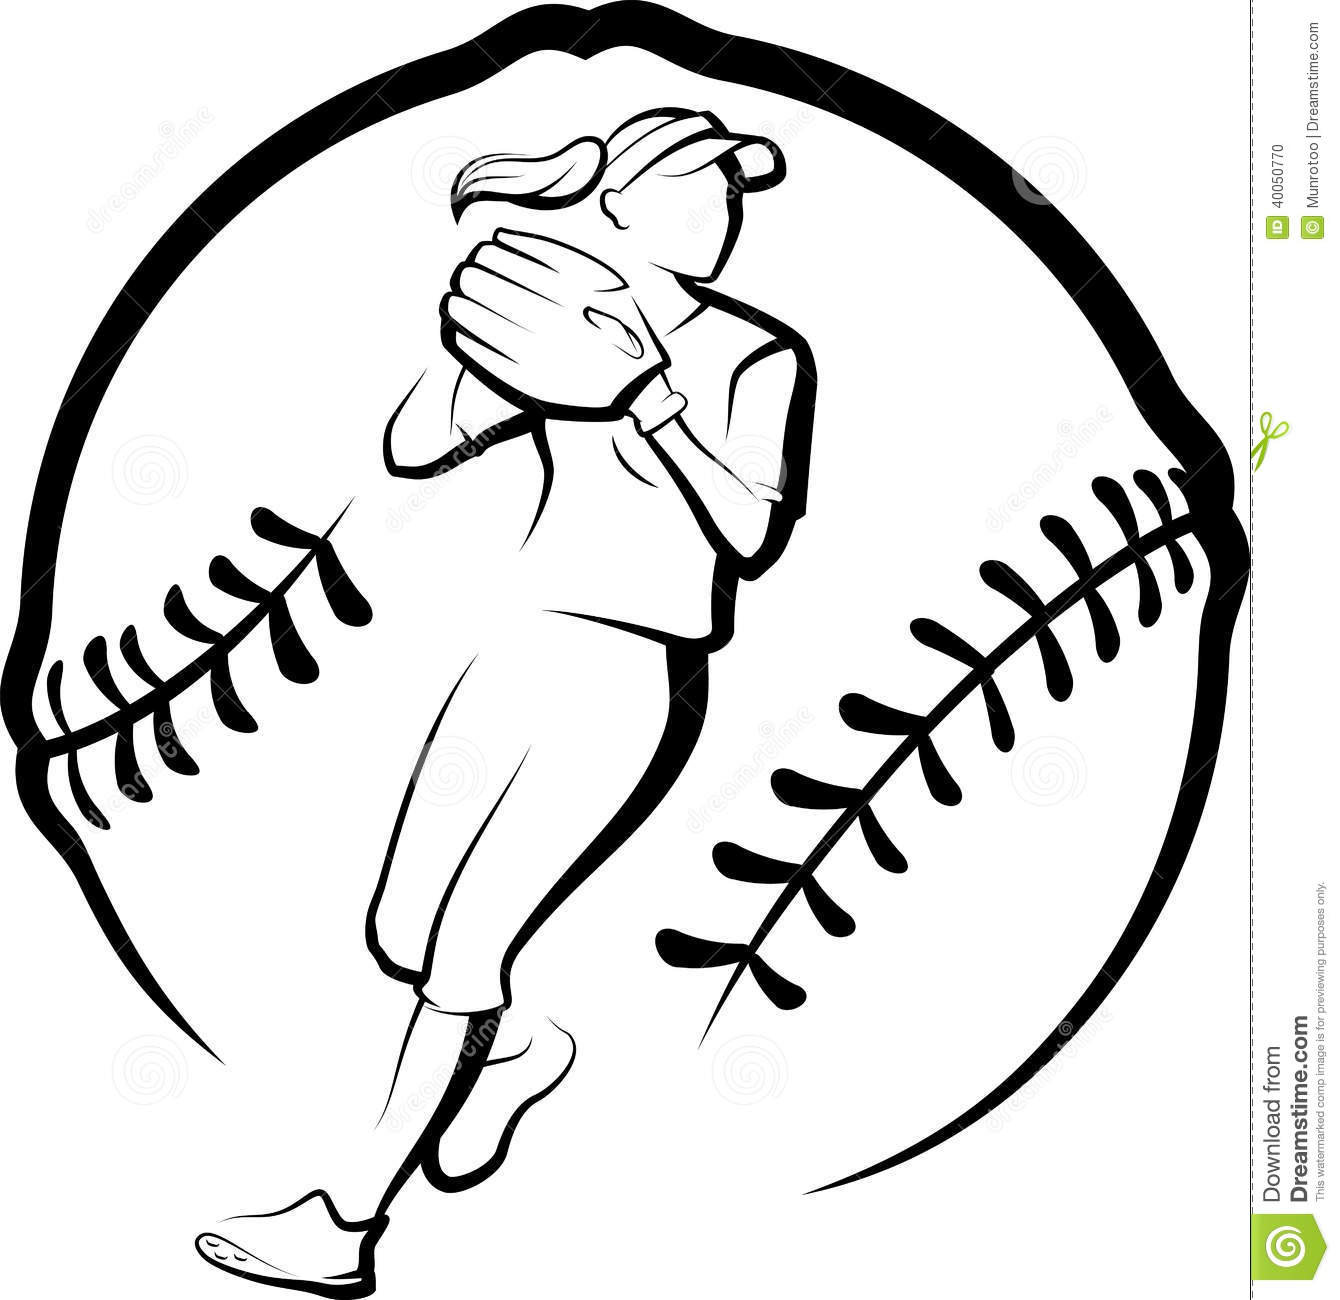 Softball Player Throwing In Stylized Ball Stock Vector - Image ...